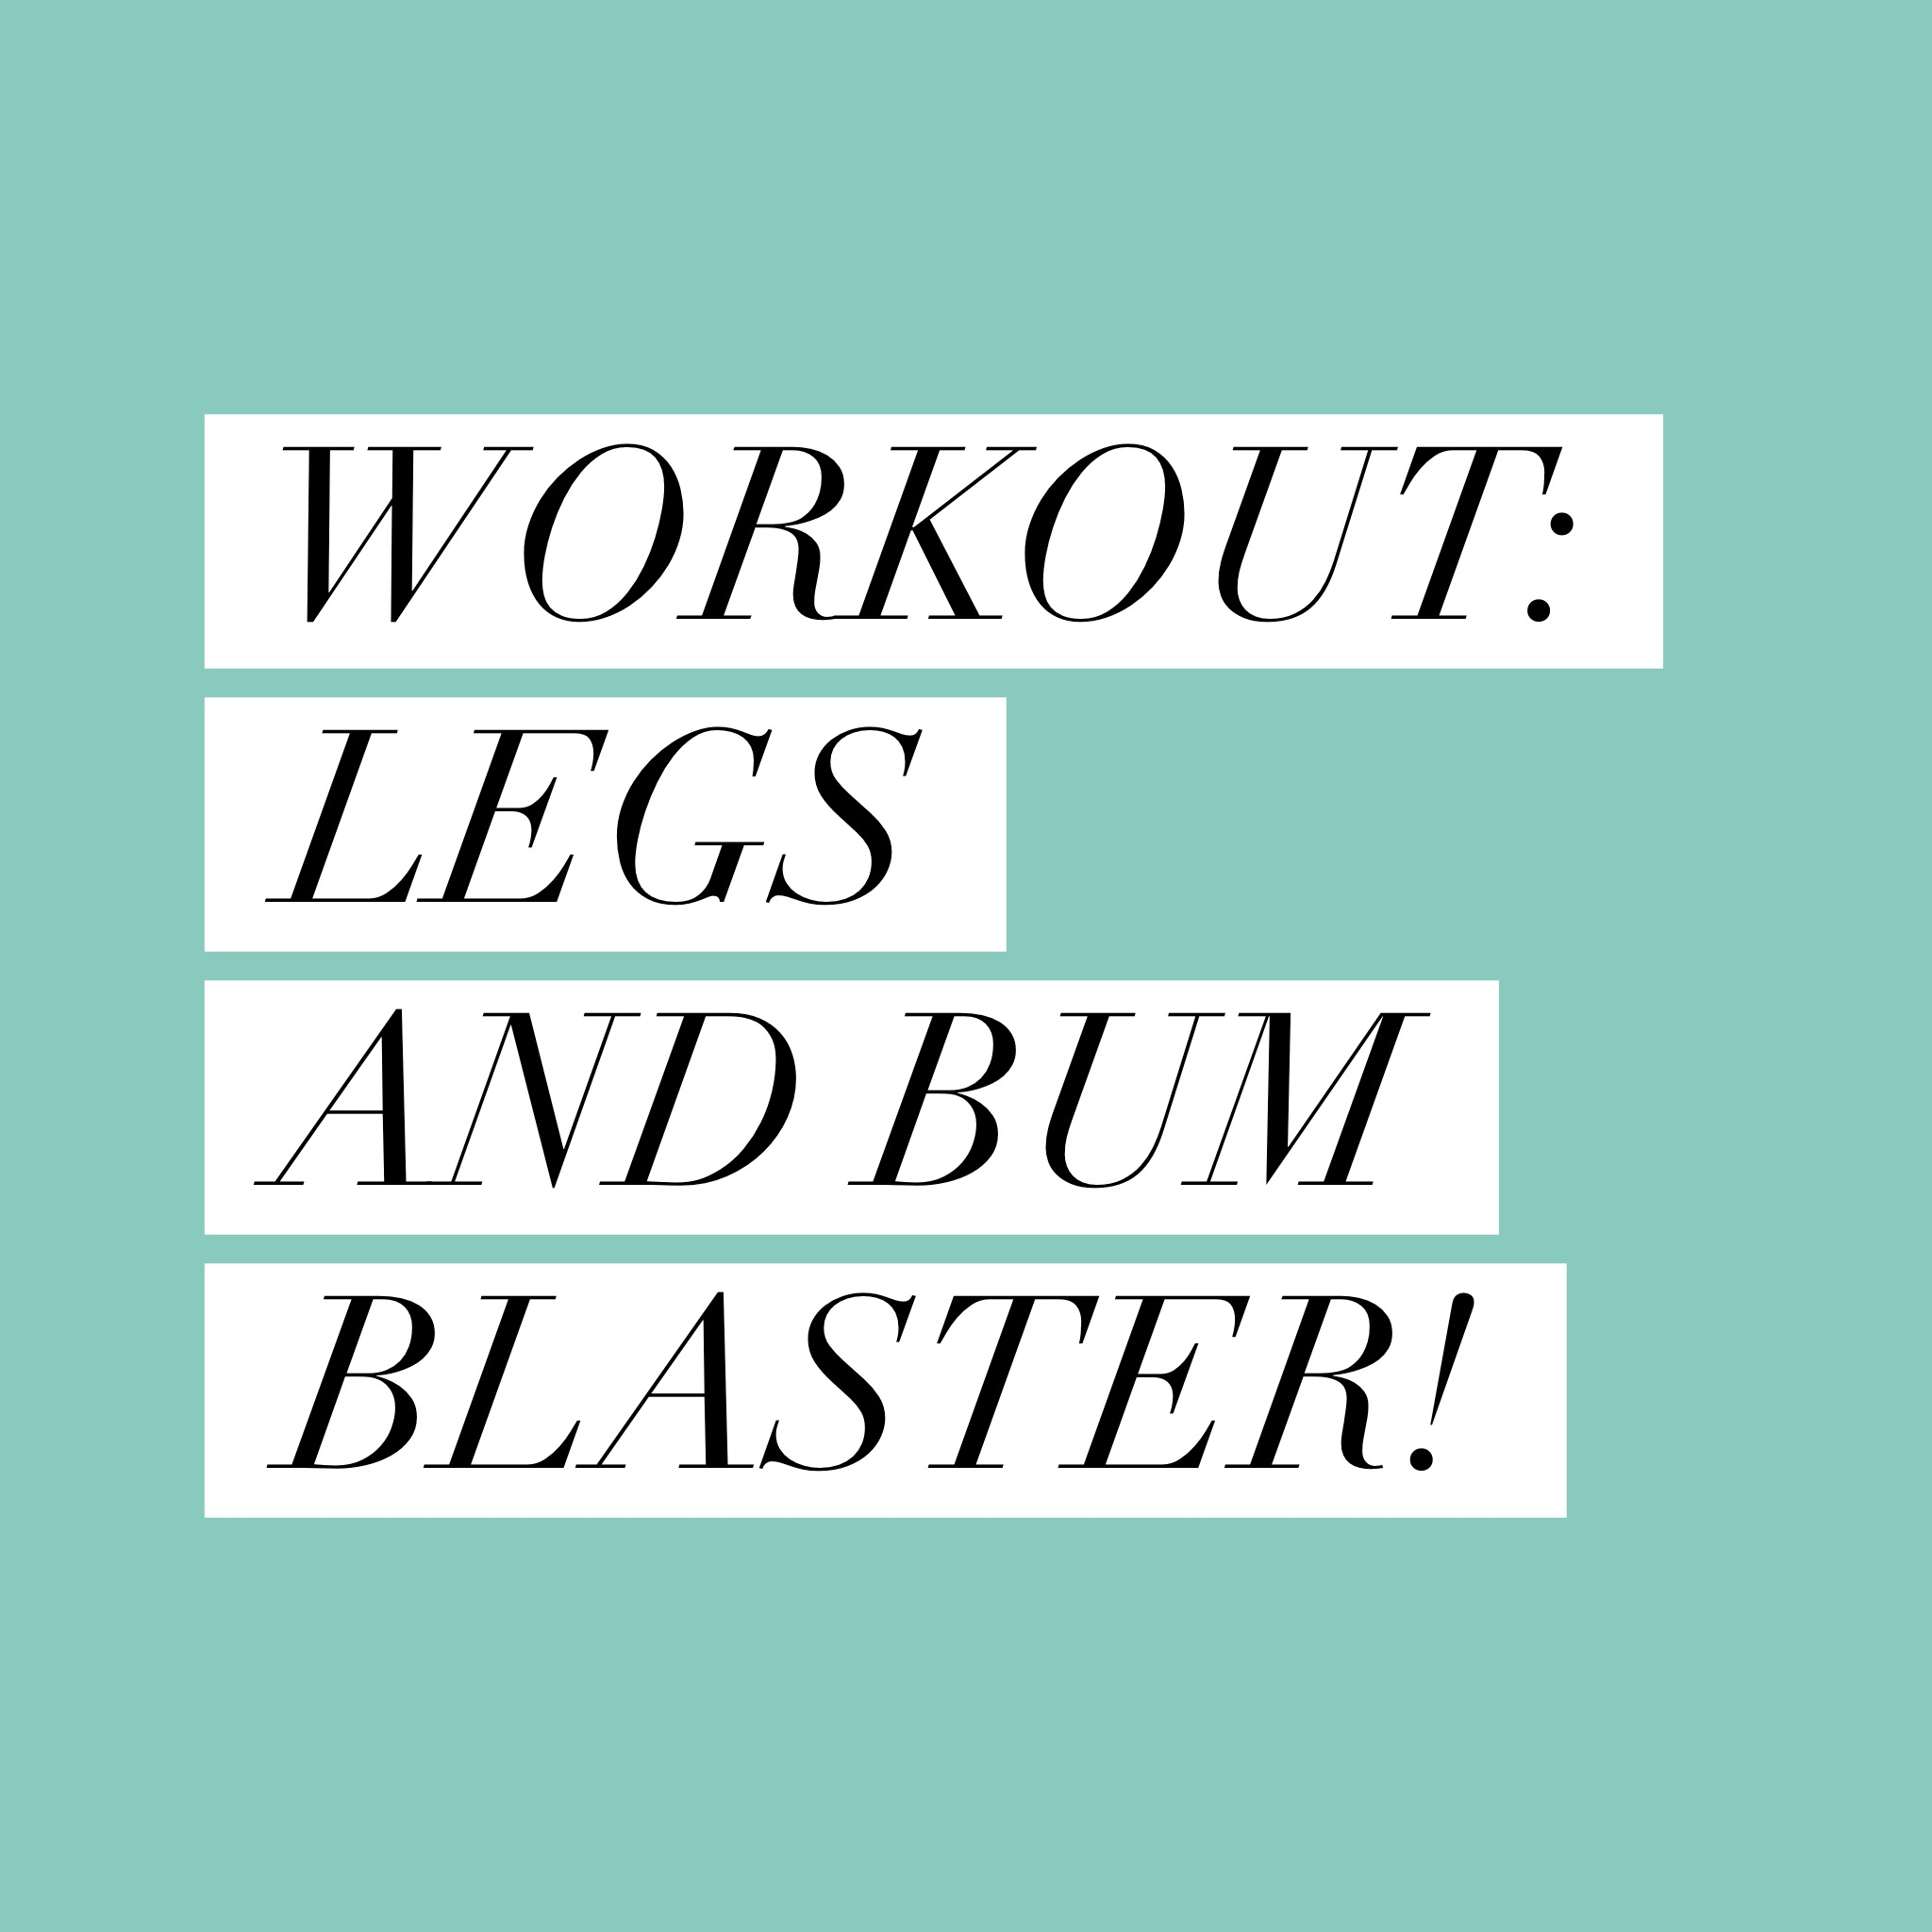 Workout: Legs and Bum Blaster